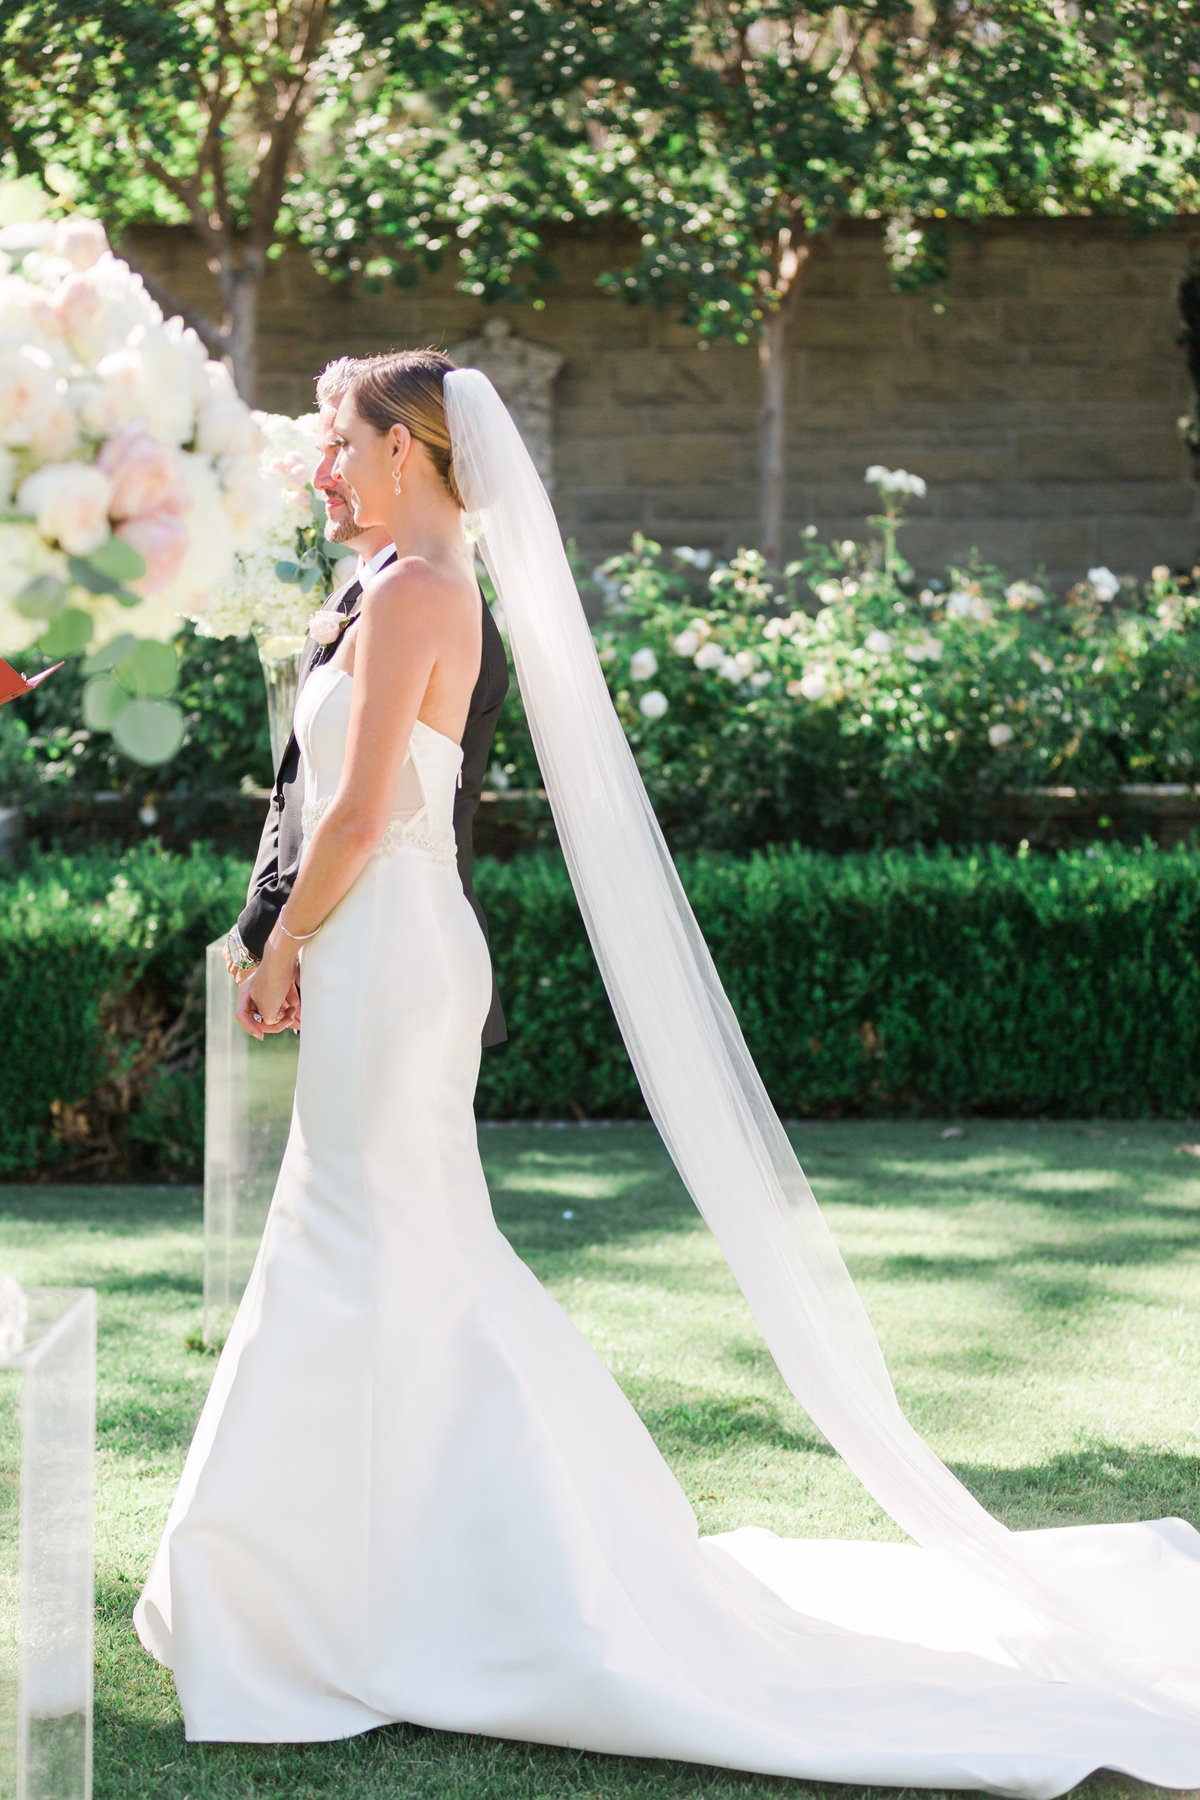 Intimate_Greystone_Mansion_Intimate_Black_Tie_Wedding_Valorie_Darling_Photography - 33 of 70